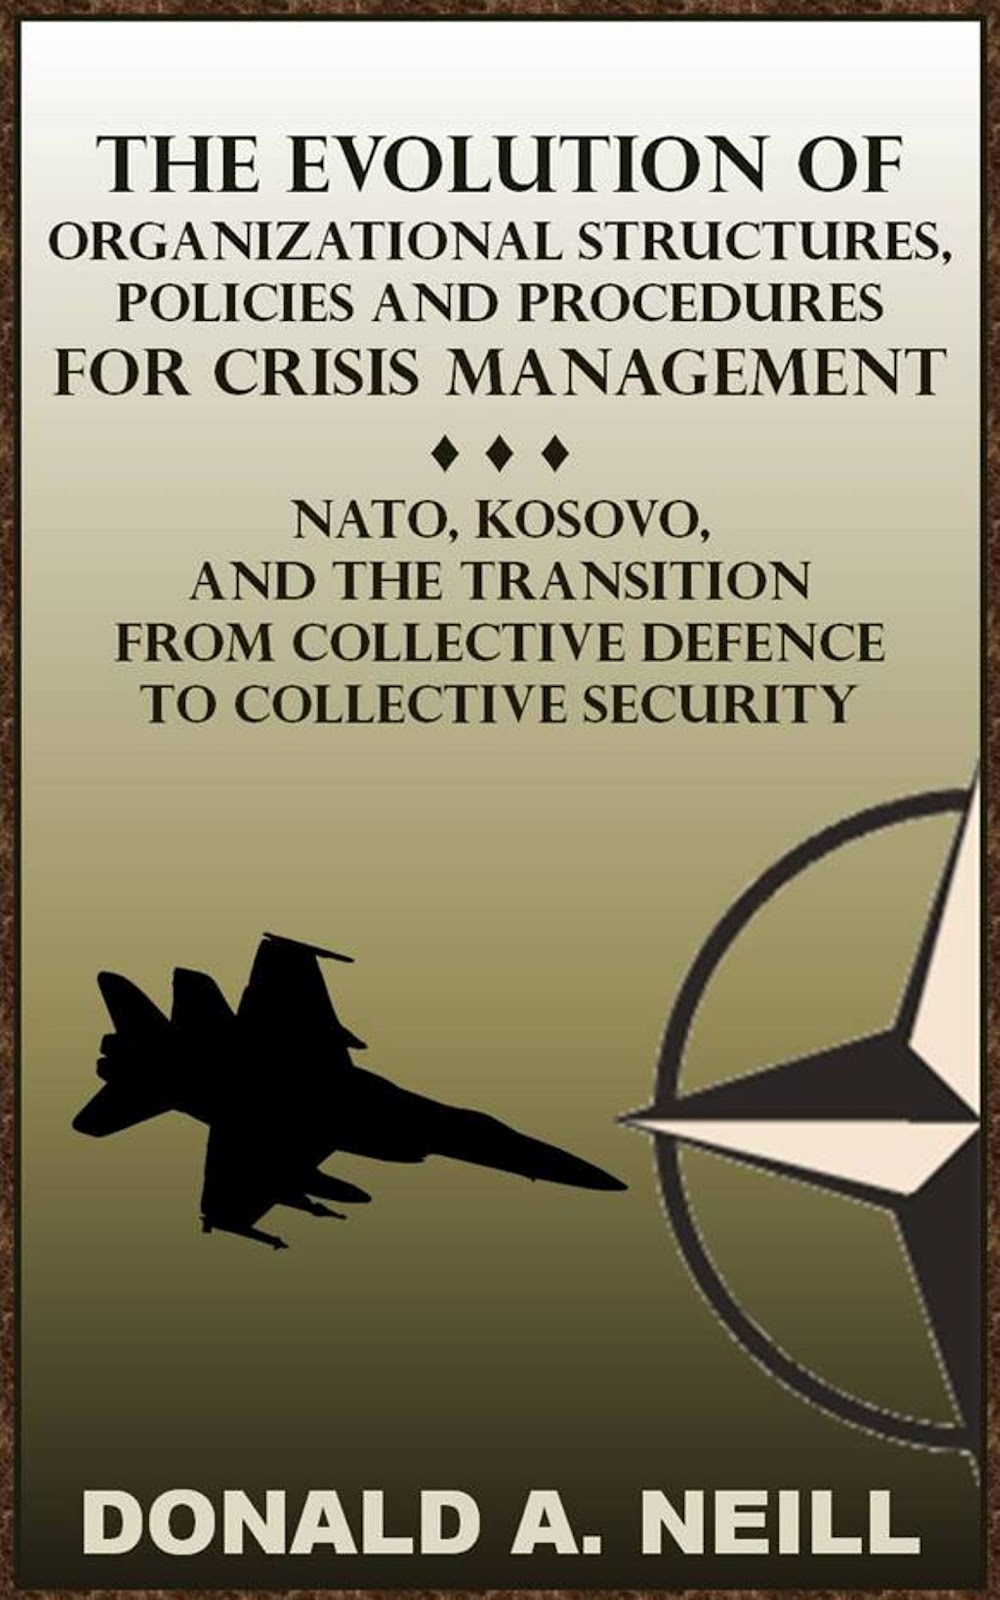 the role of nato in the kosovo crisis This has serious ramifications -- from the role of the media to the intentions of nato  the kosovo crisis mainstream media representation.